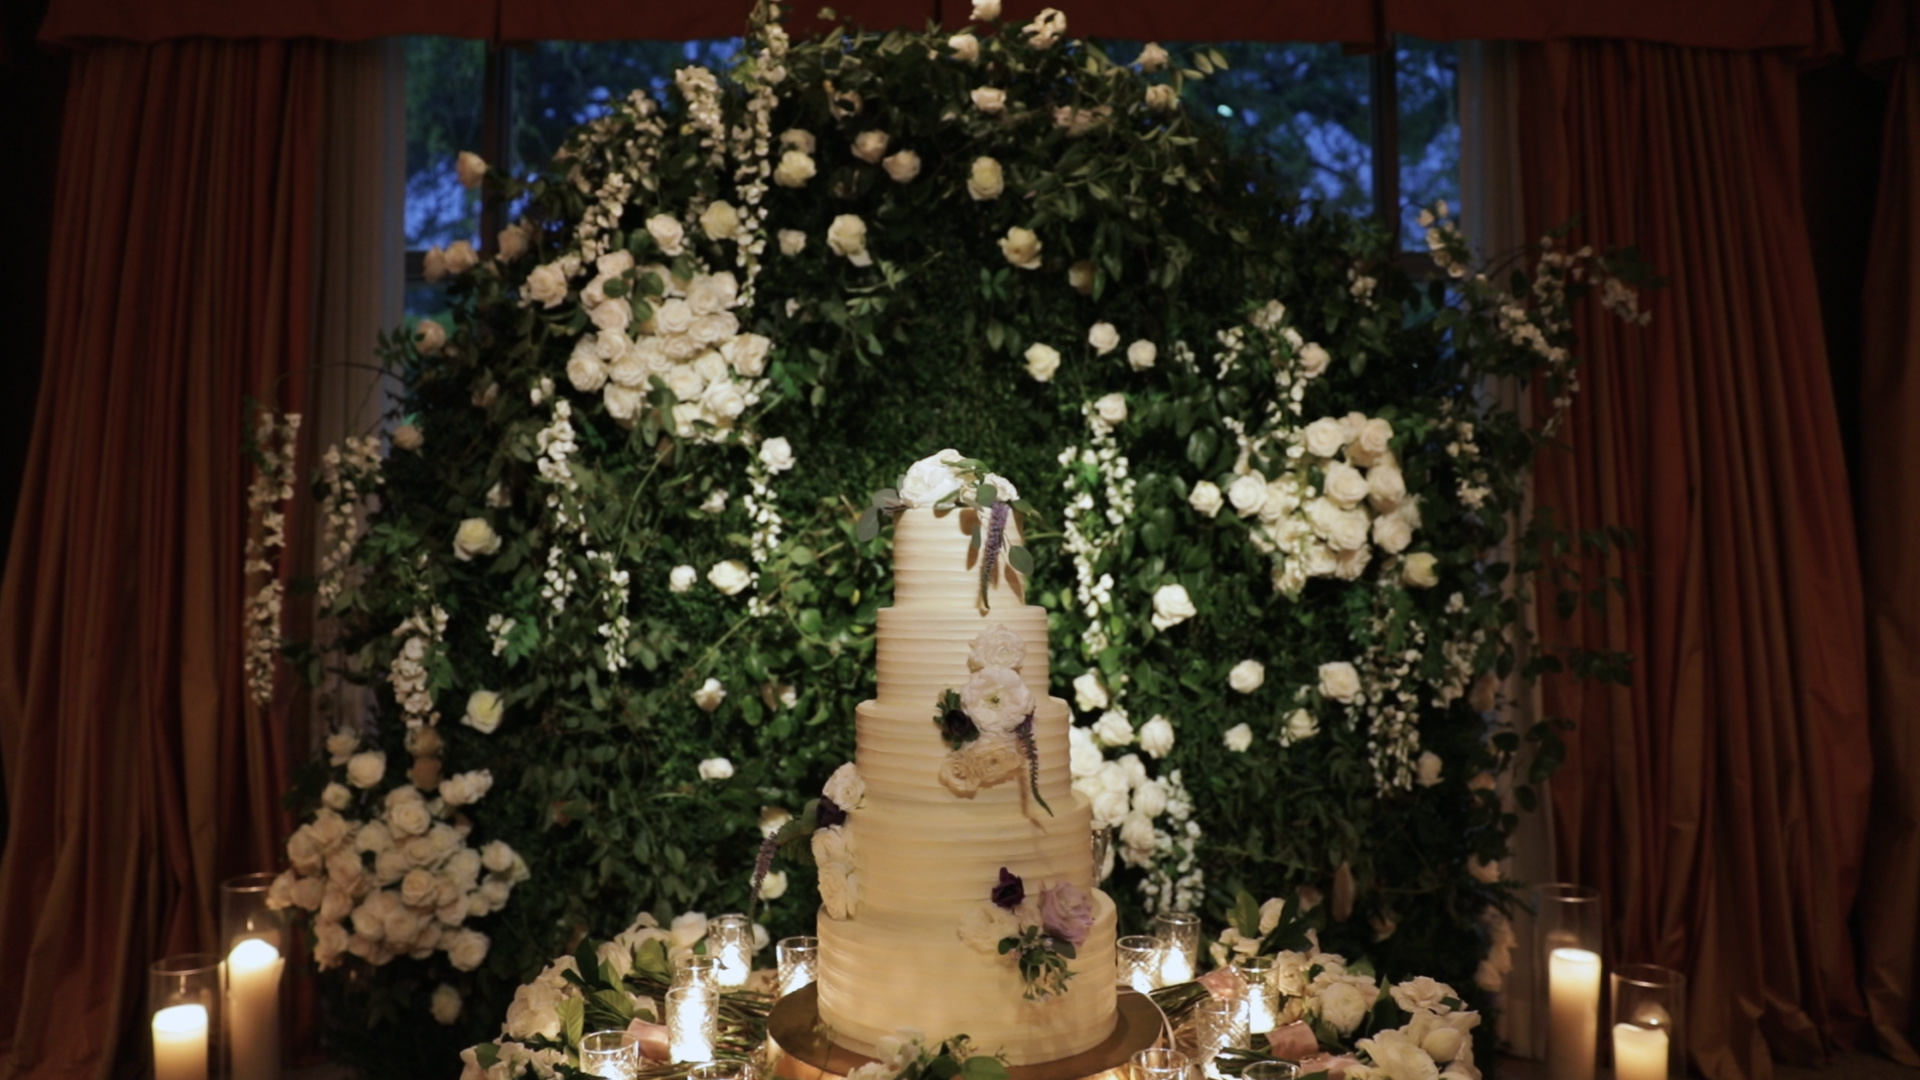 New Orleans Wedding Video_Sibyl and Charles_Wedding Cake